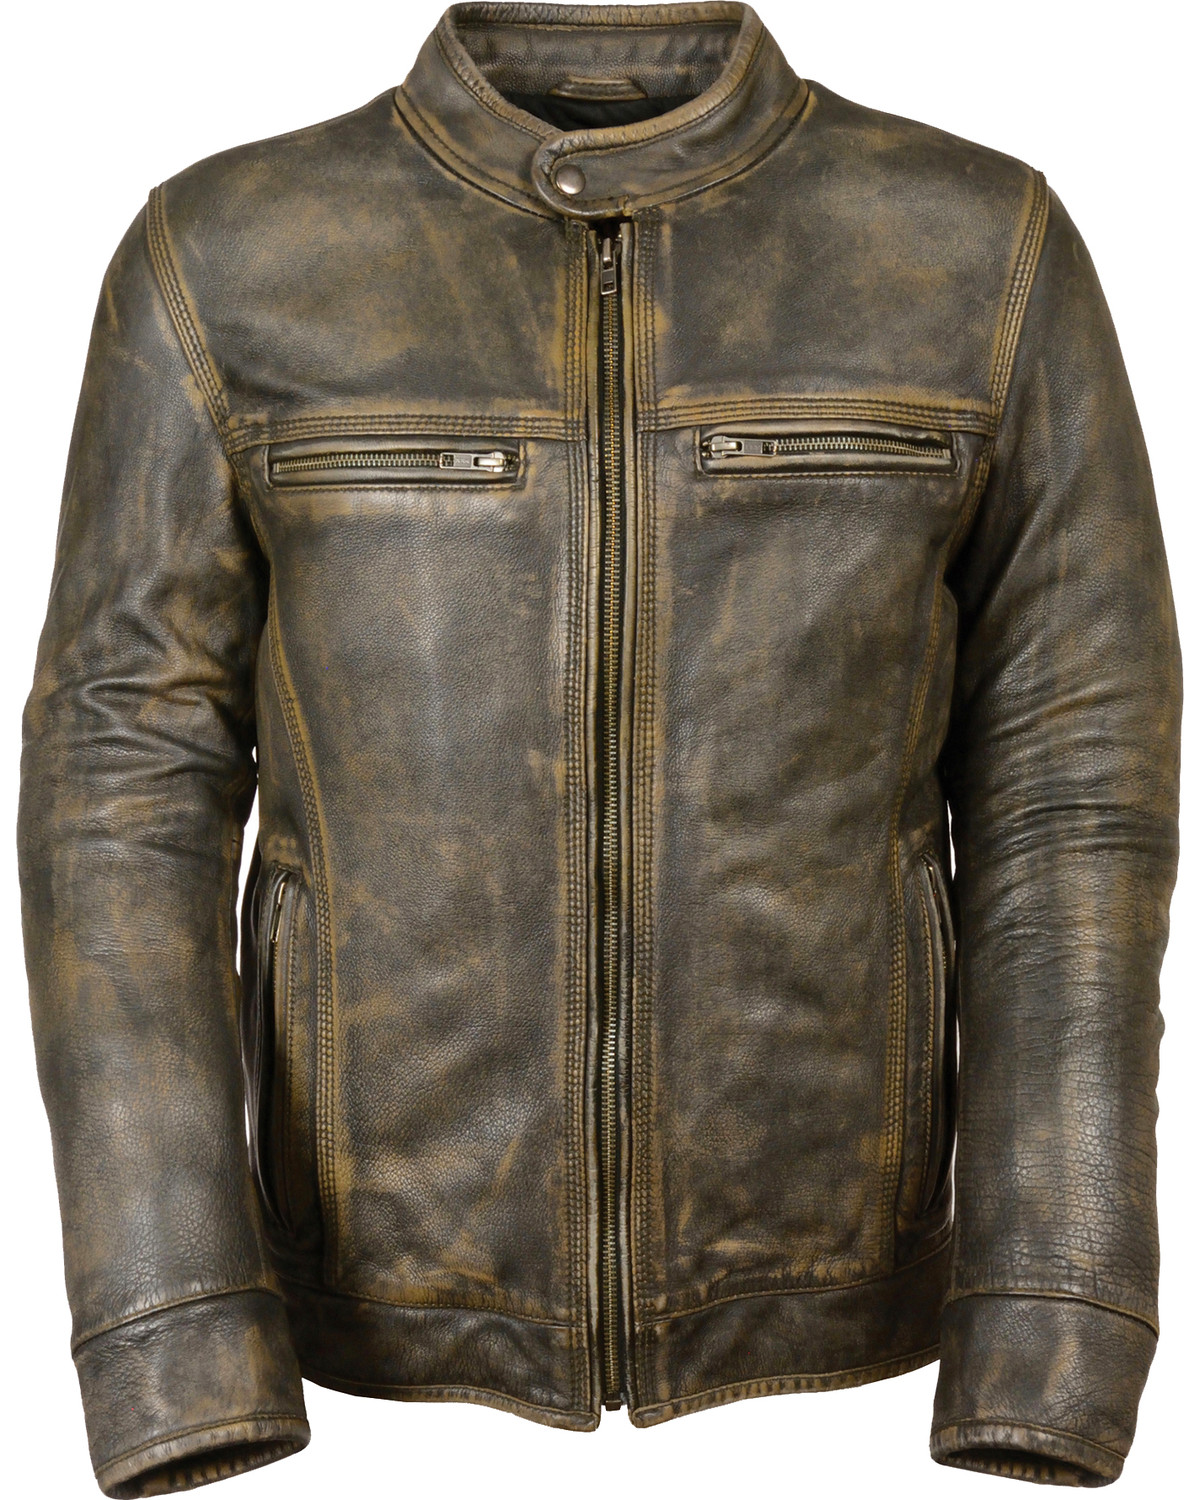 77511ac95 Milwaukee Leather Men's Brown Distressed Scooter Jacket w/ Venting - Big -  4X